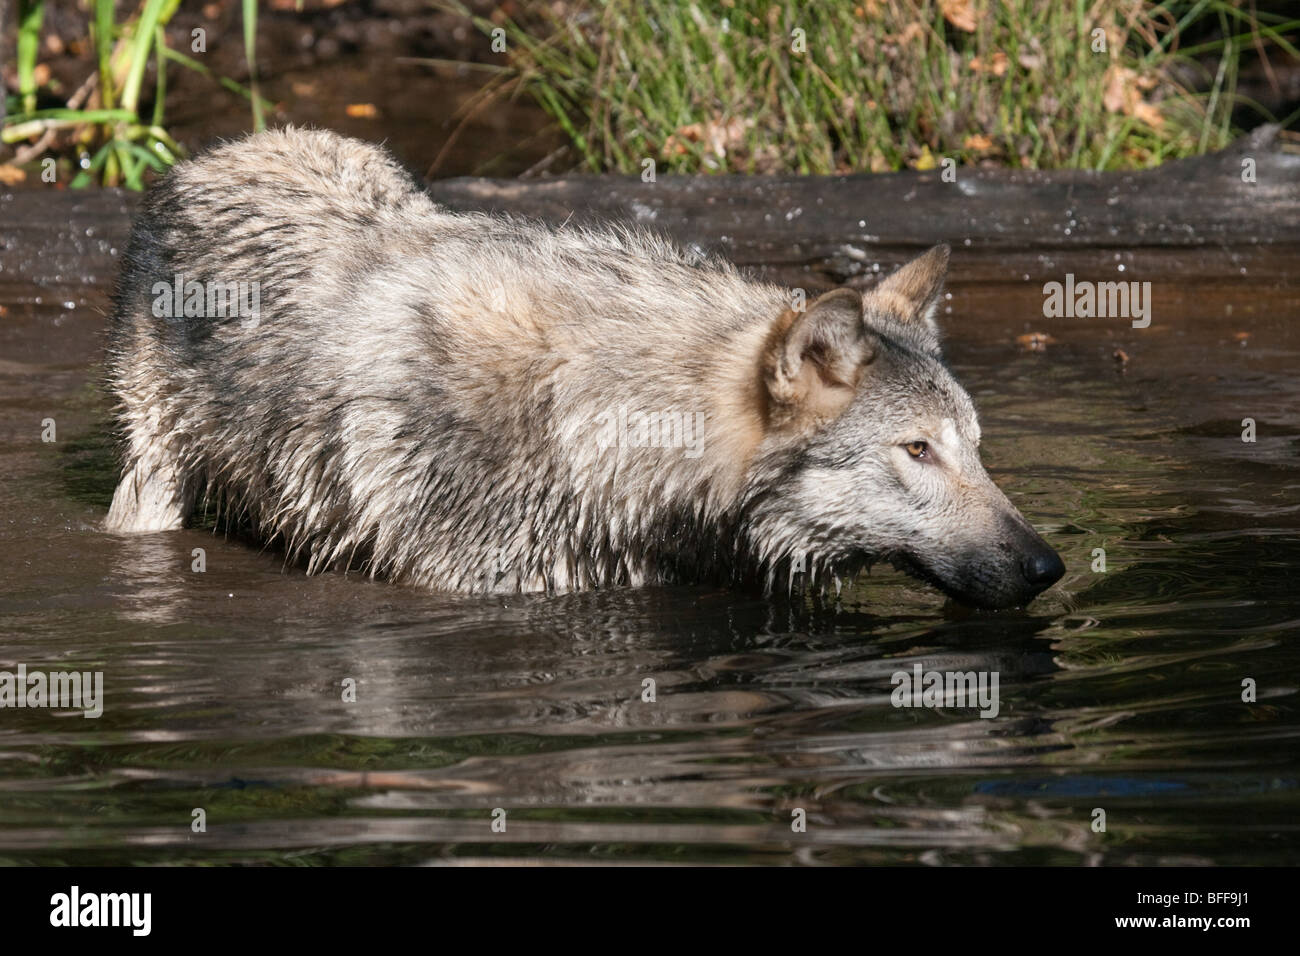 Timber or gray wolf standing in a small pond up to its nose in water. Stock Photo